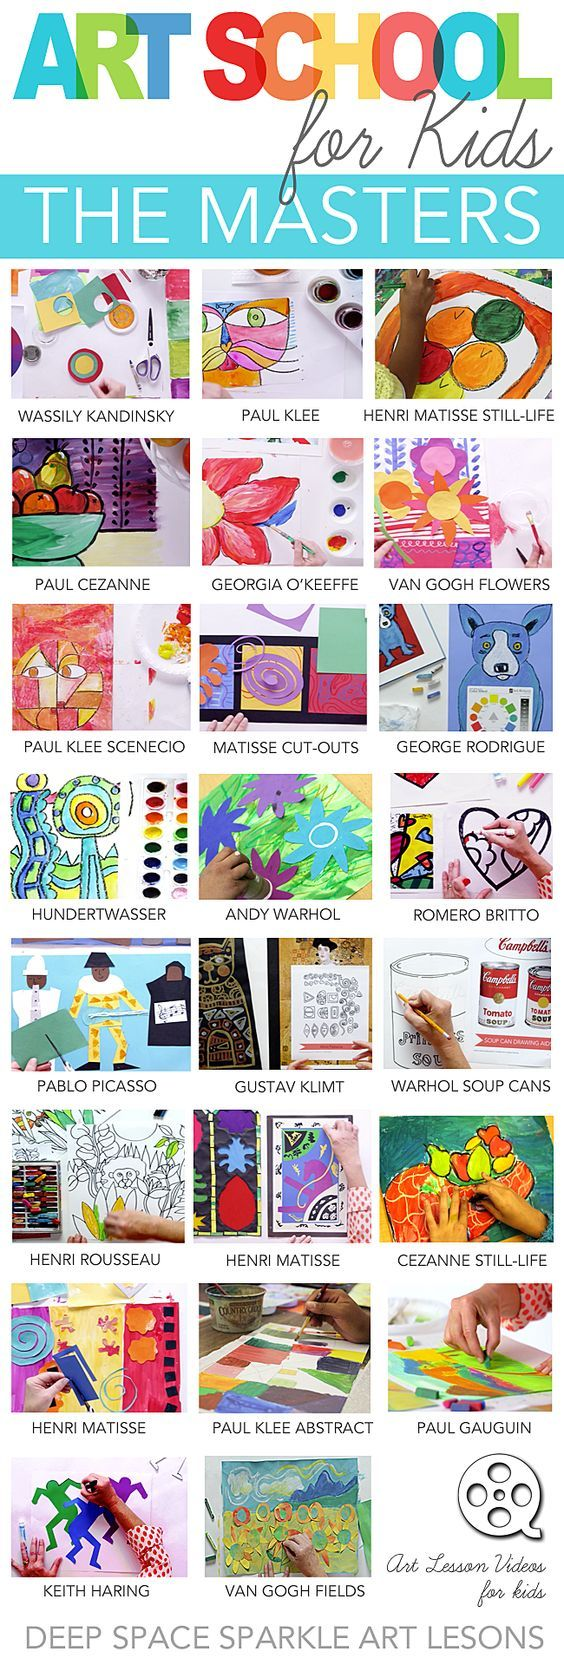 Art School for Kids Art Videos of the Masters: